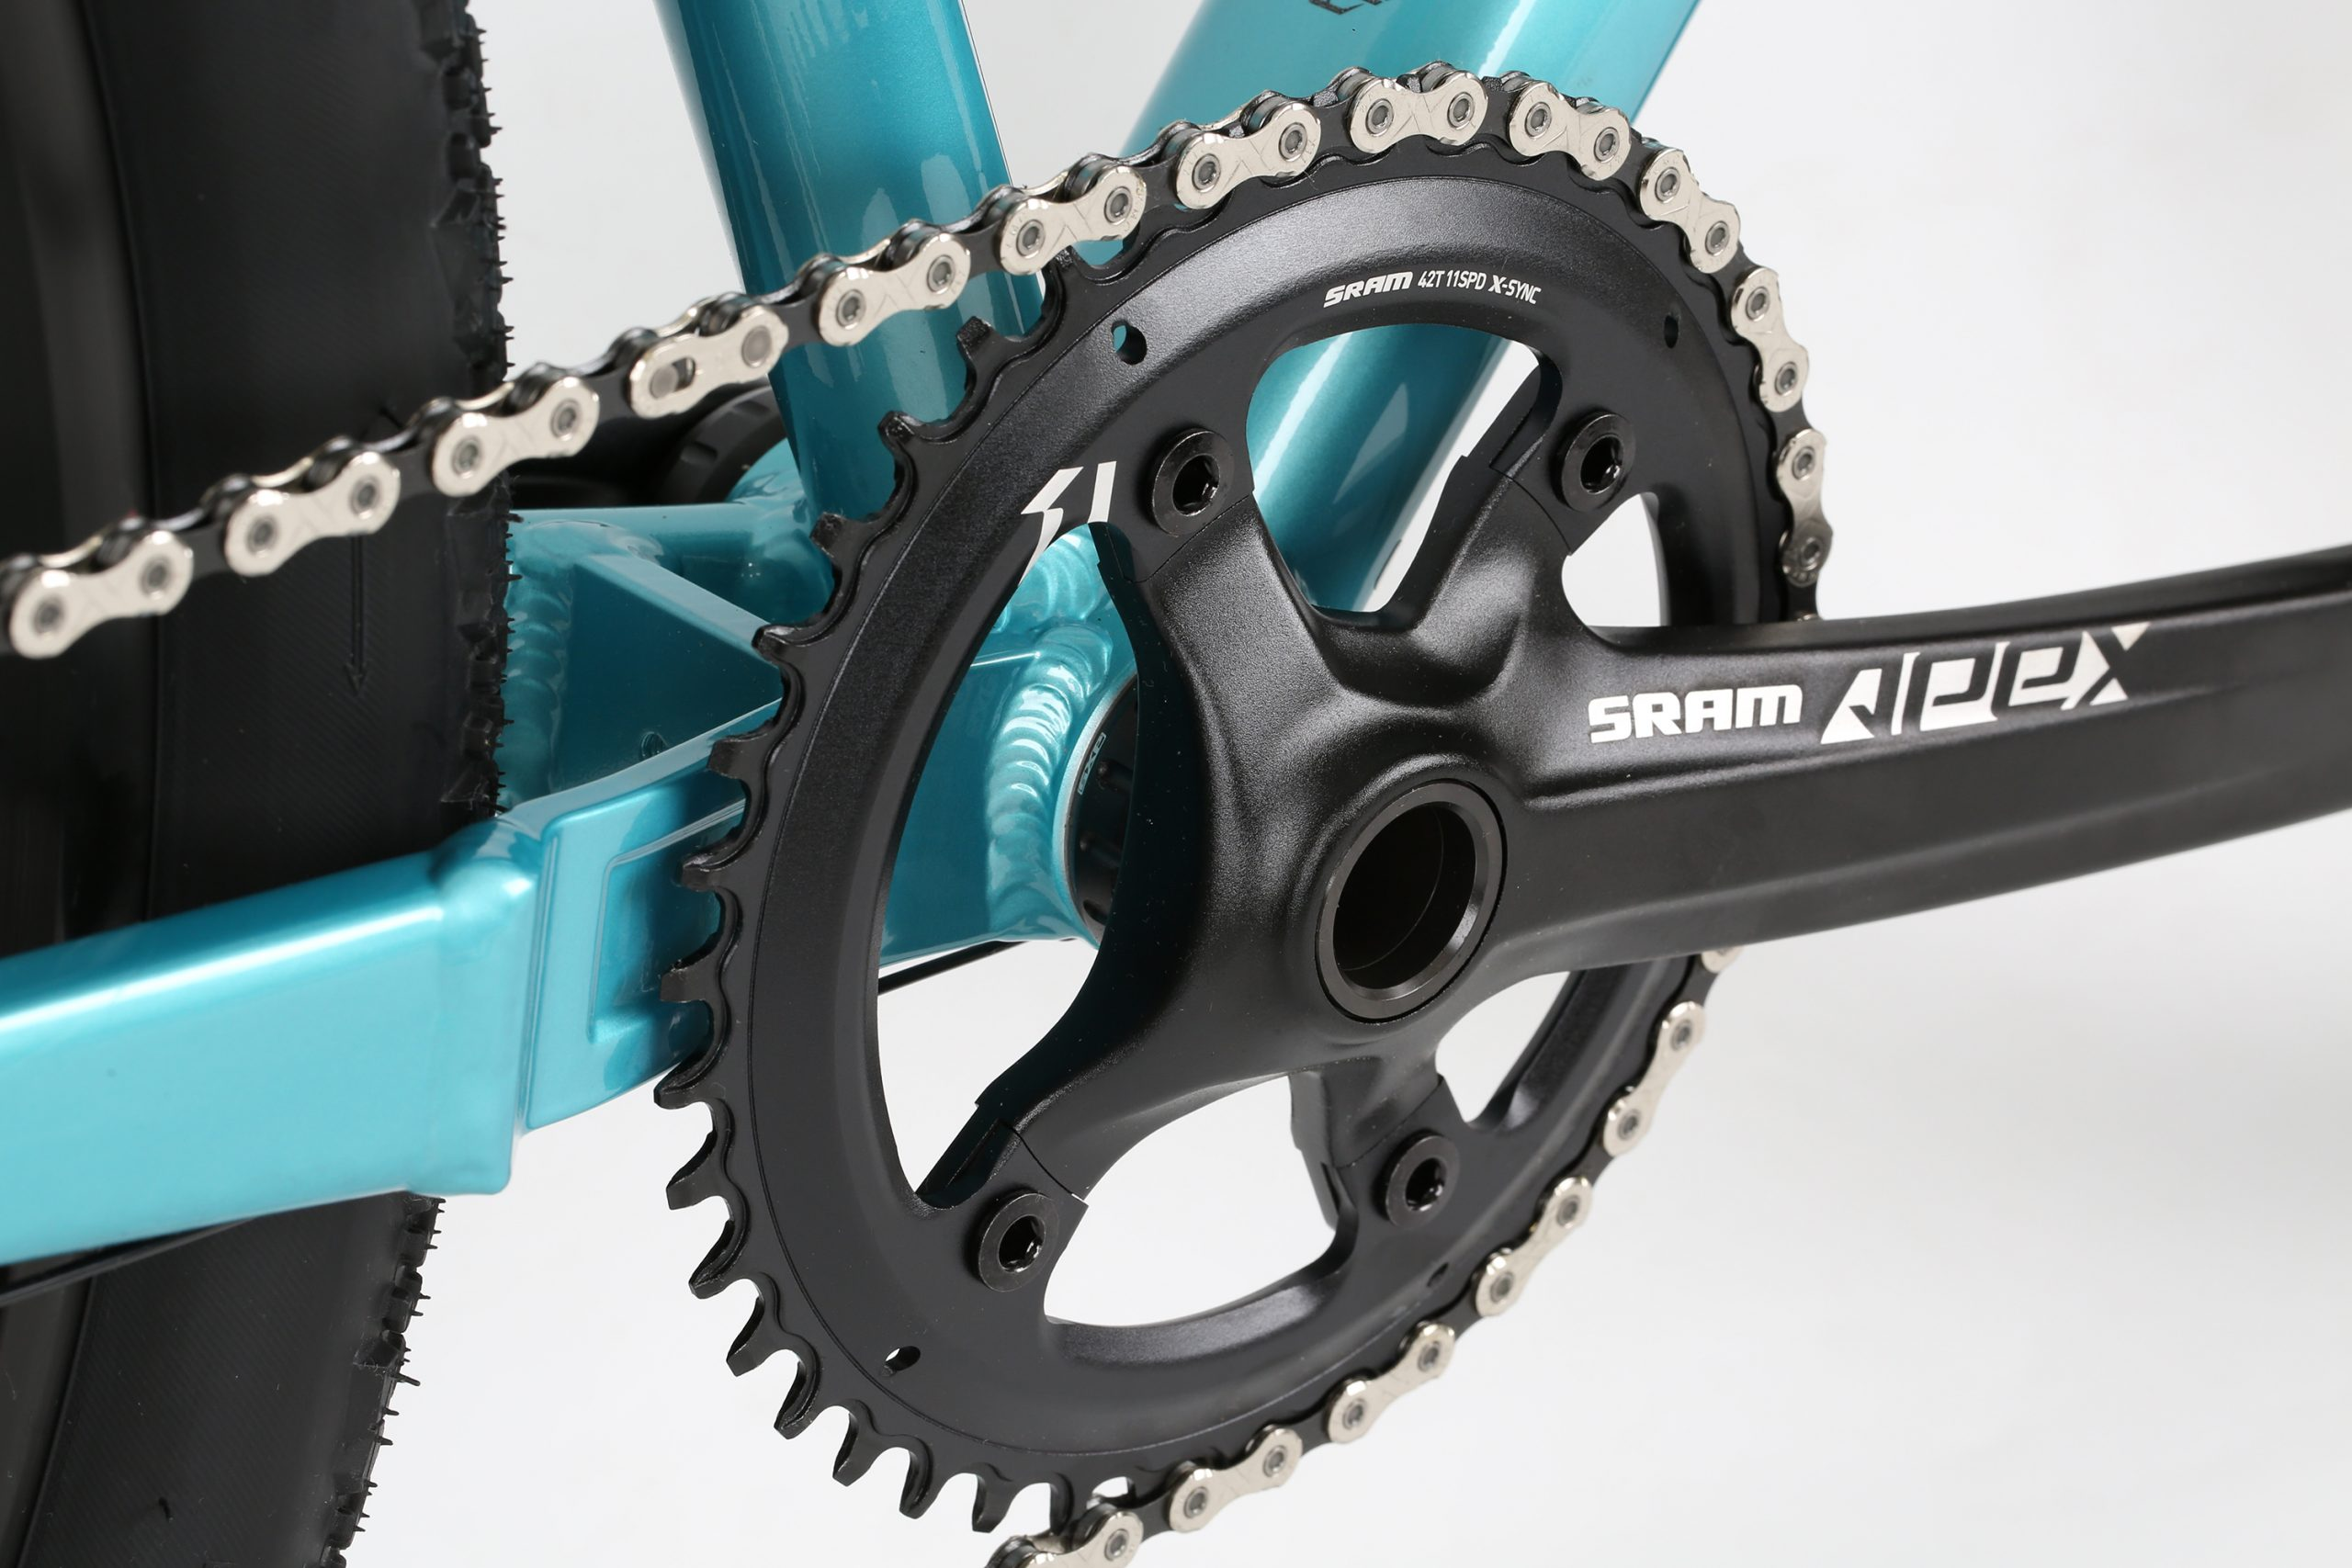 c0d8a9aa 673f 44fb a24a feccb1fc4f8c.c62ba7ae78544349b944a01f04dc0262 scaled Ridley X-Trail Gravel Bicycle